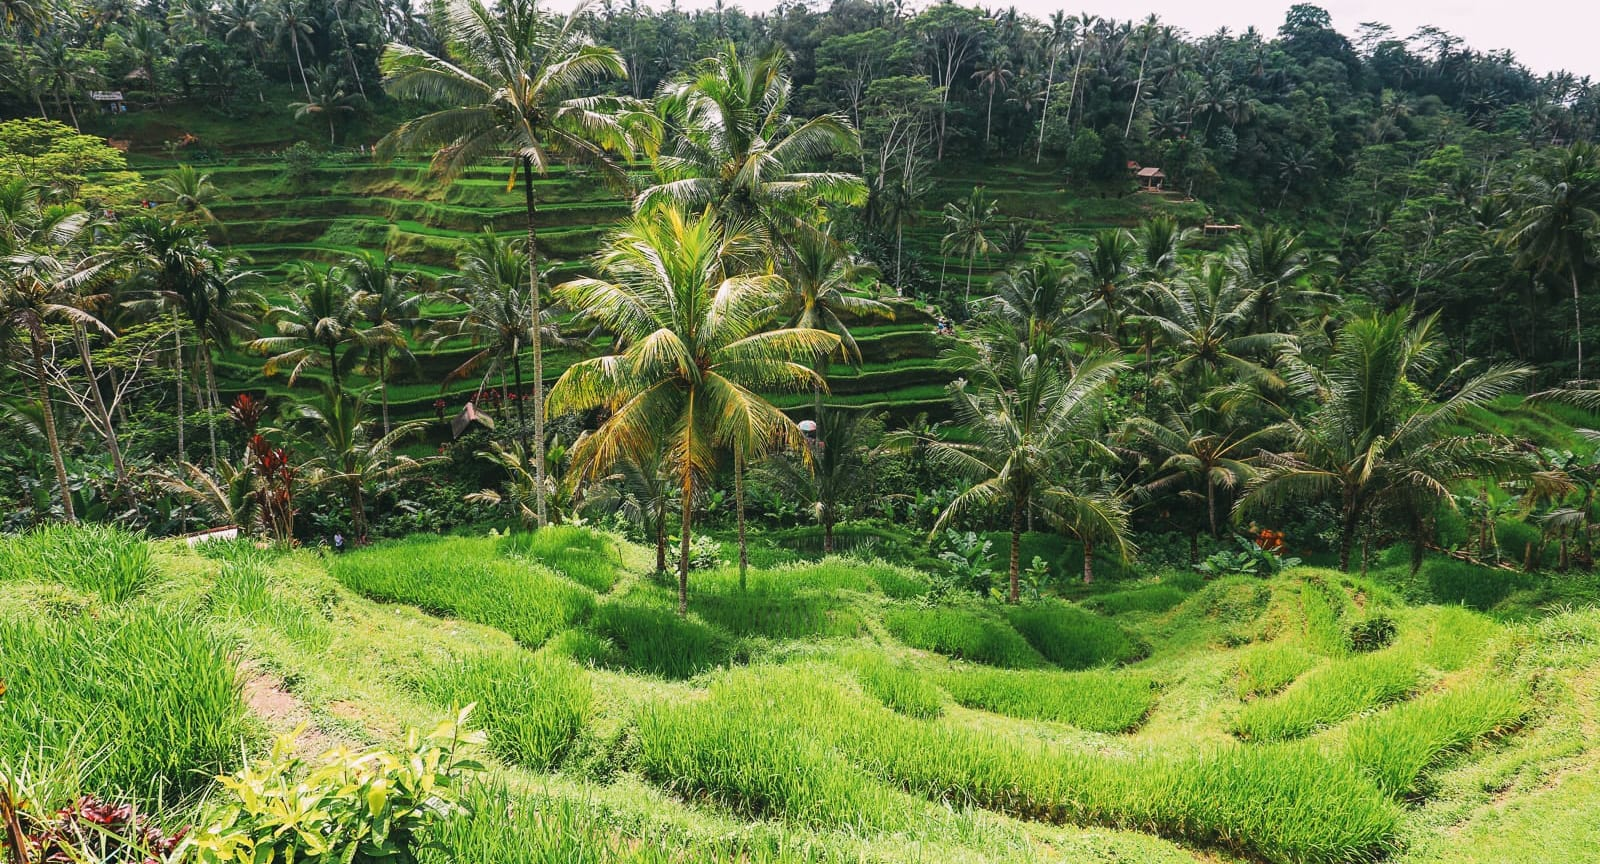 The Best Bali Day Trip: Waterfalls And Rice Terraces In Ubud